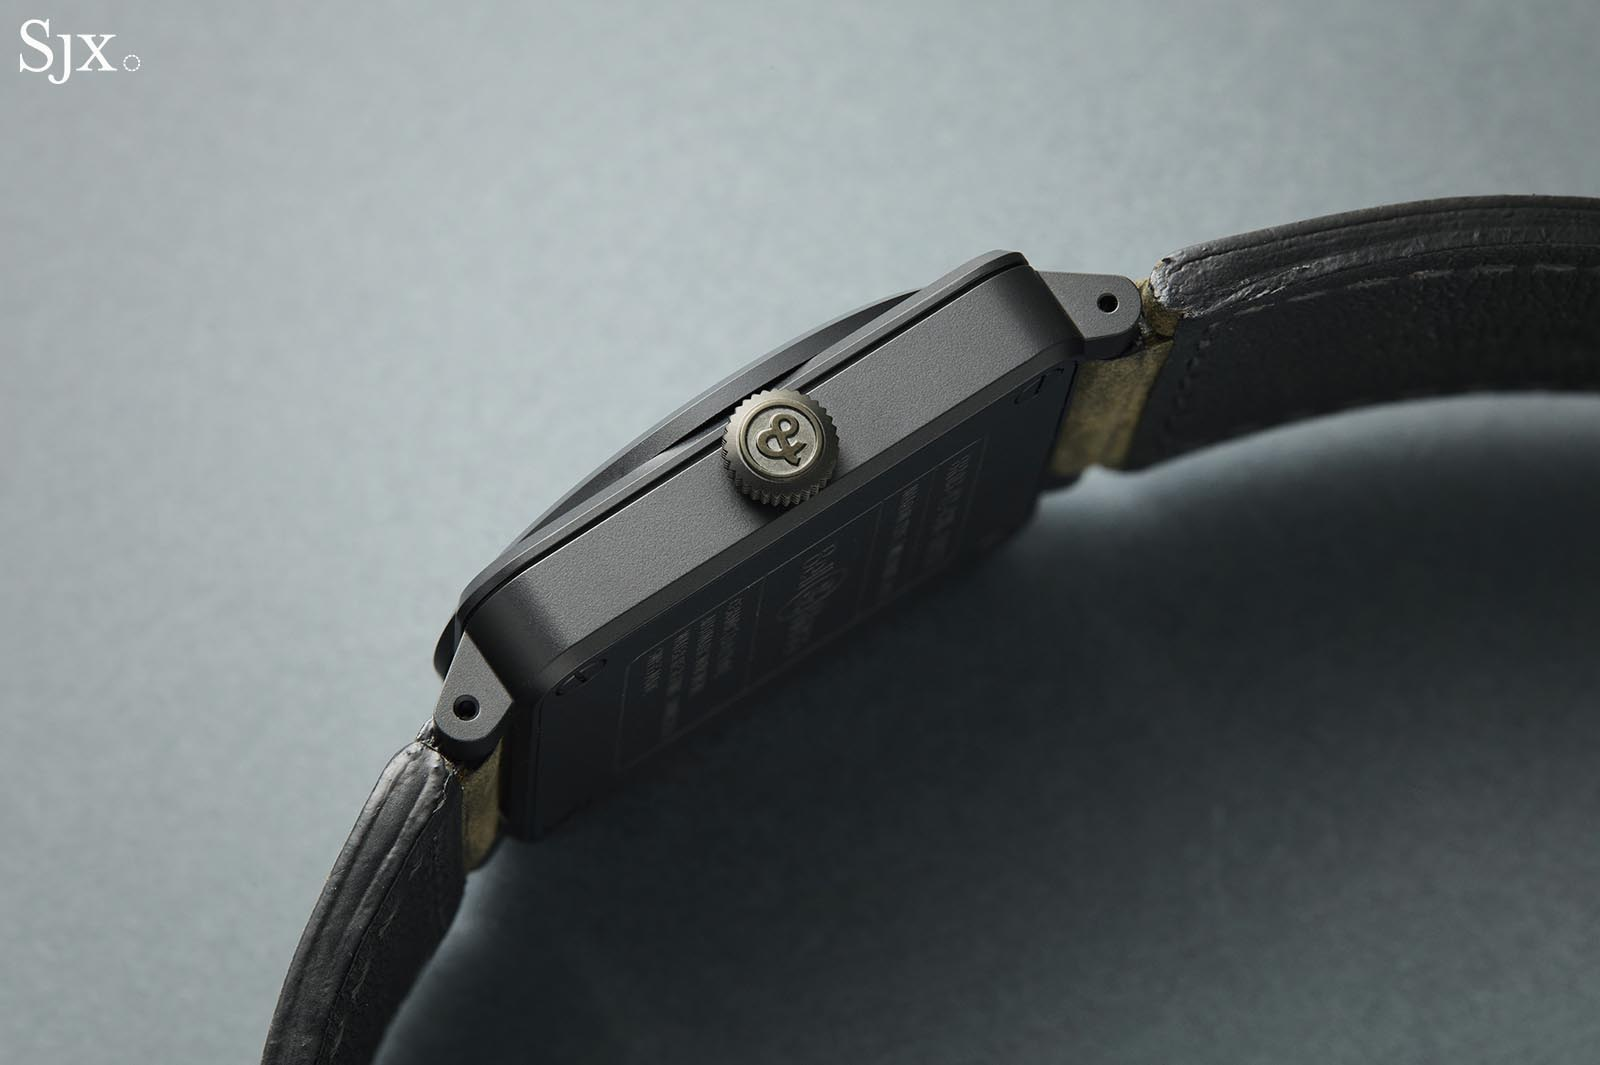 Bell & Ross BR 03-92 Nightlum 4